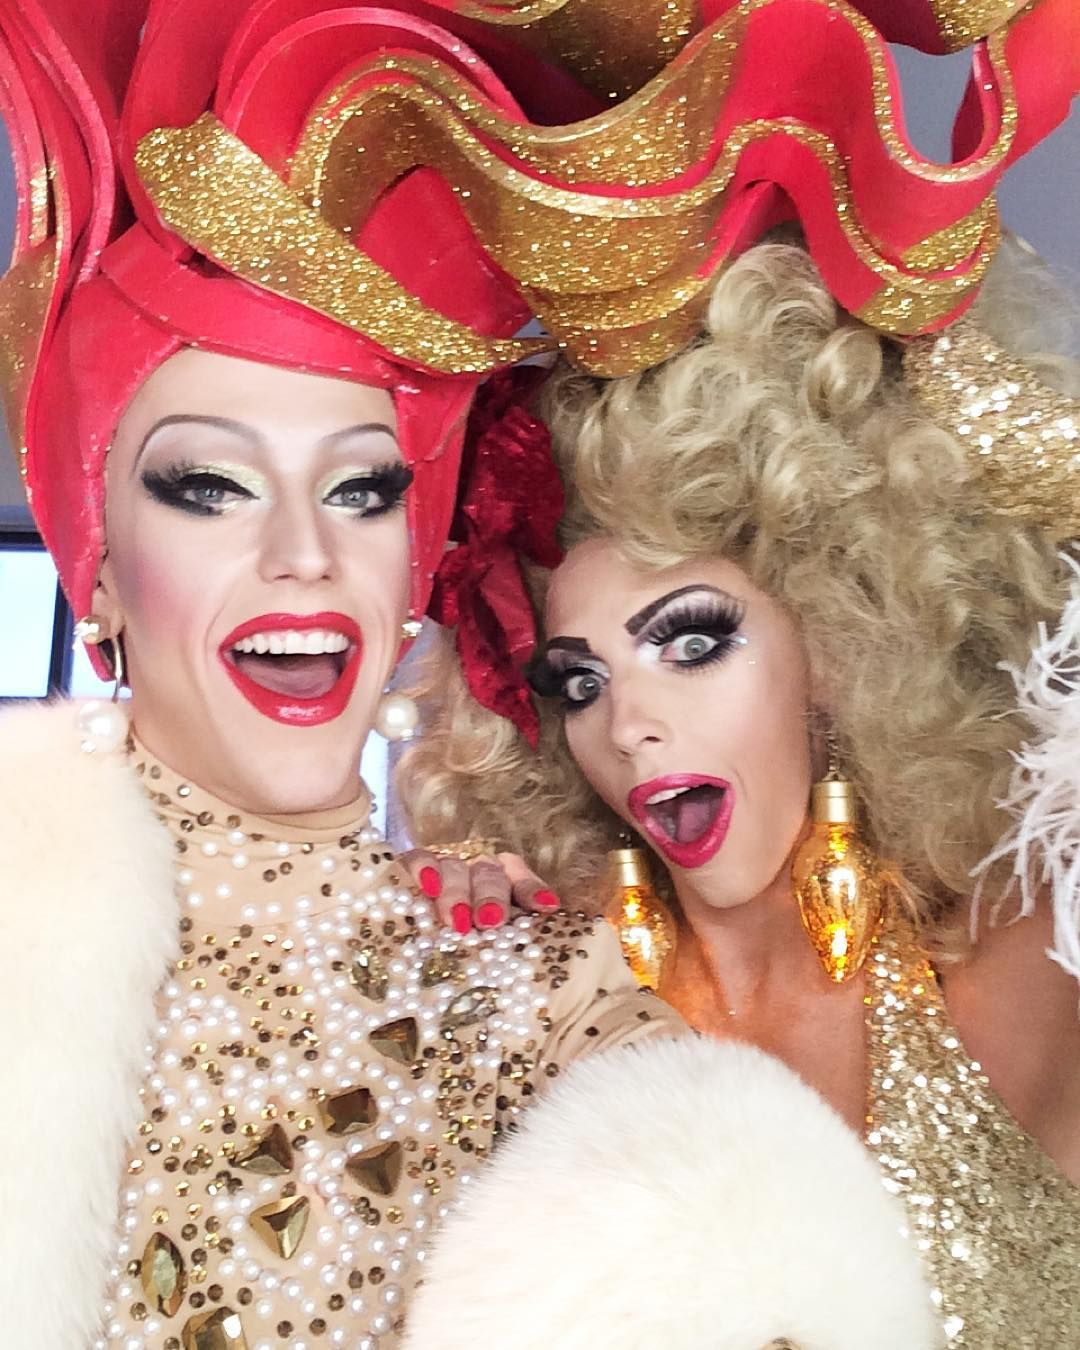 Laganja Estranja and Alyssa Edwards